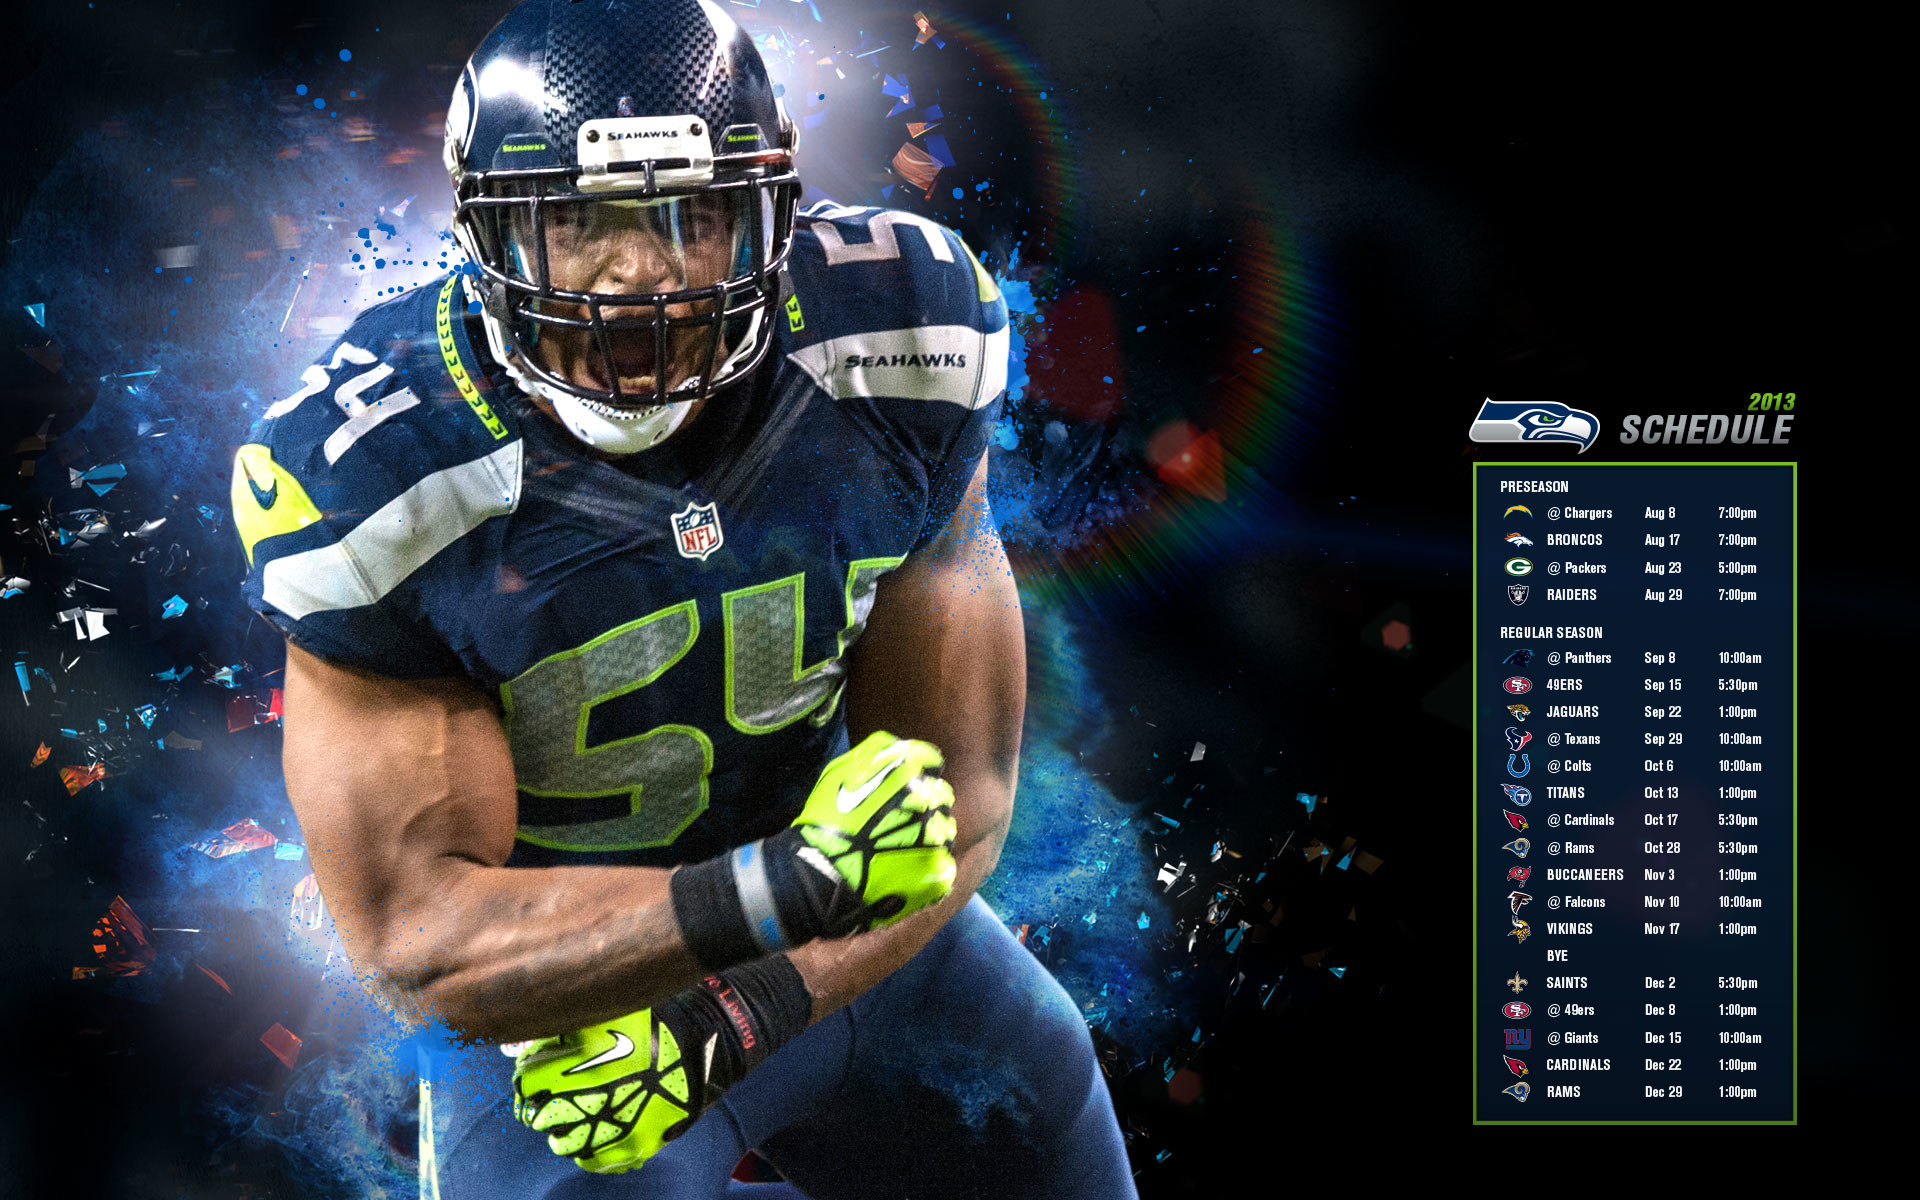 Seahawks Iphone 6 Plus Wallpaper 74 Images